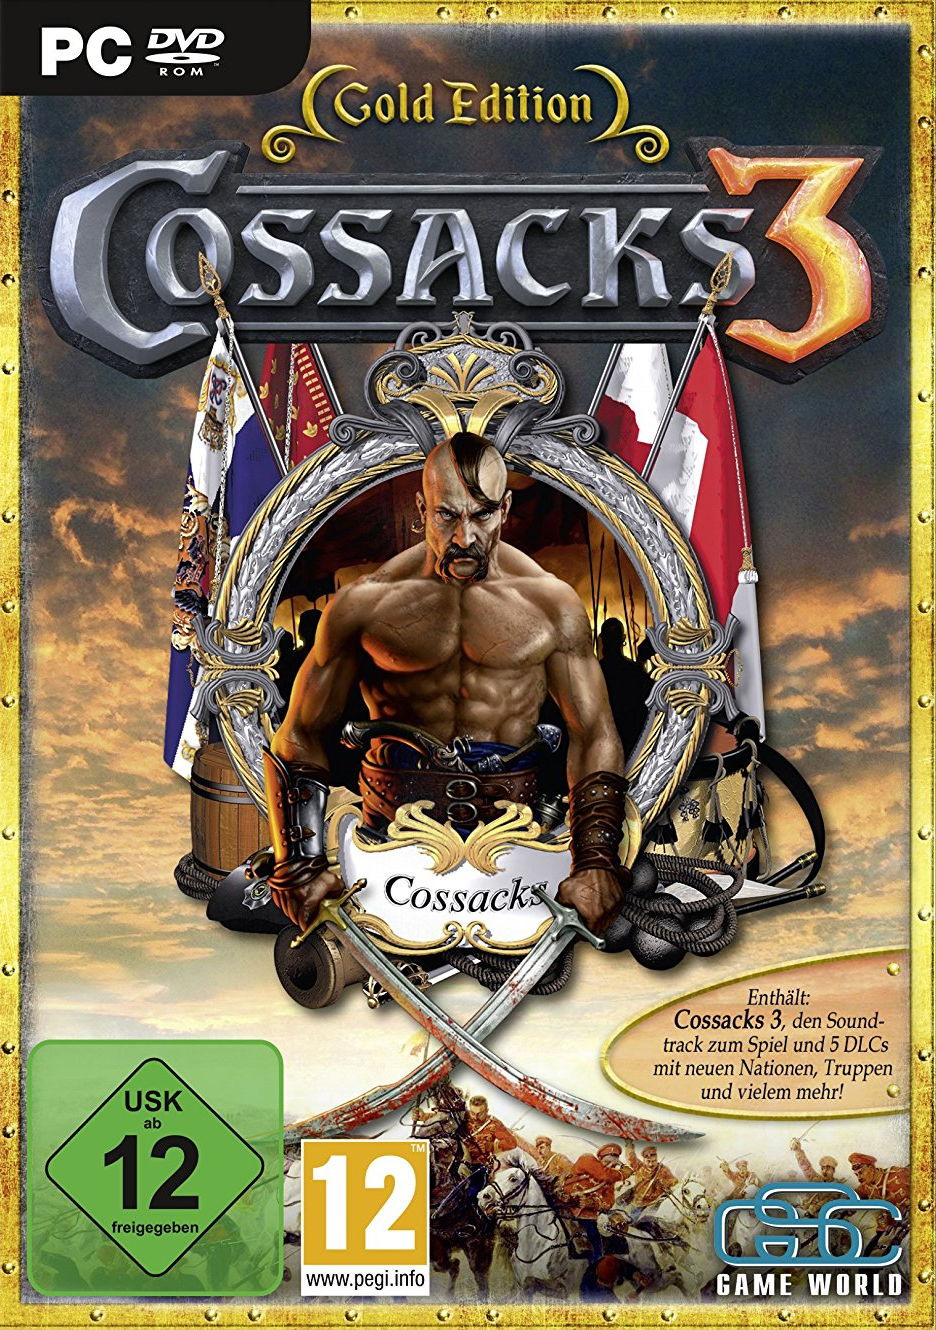 Cossacks 3 - Gold Edition